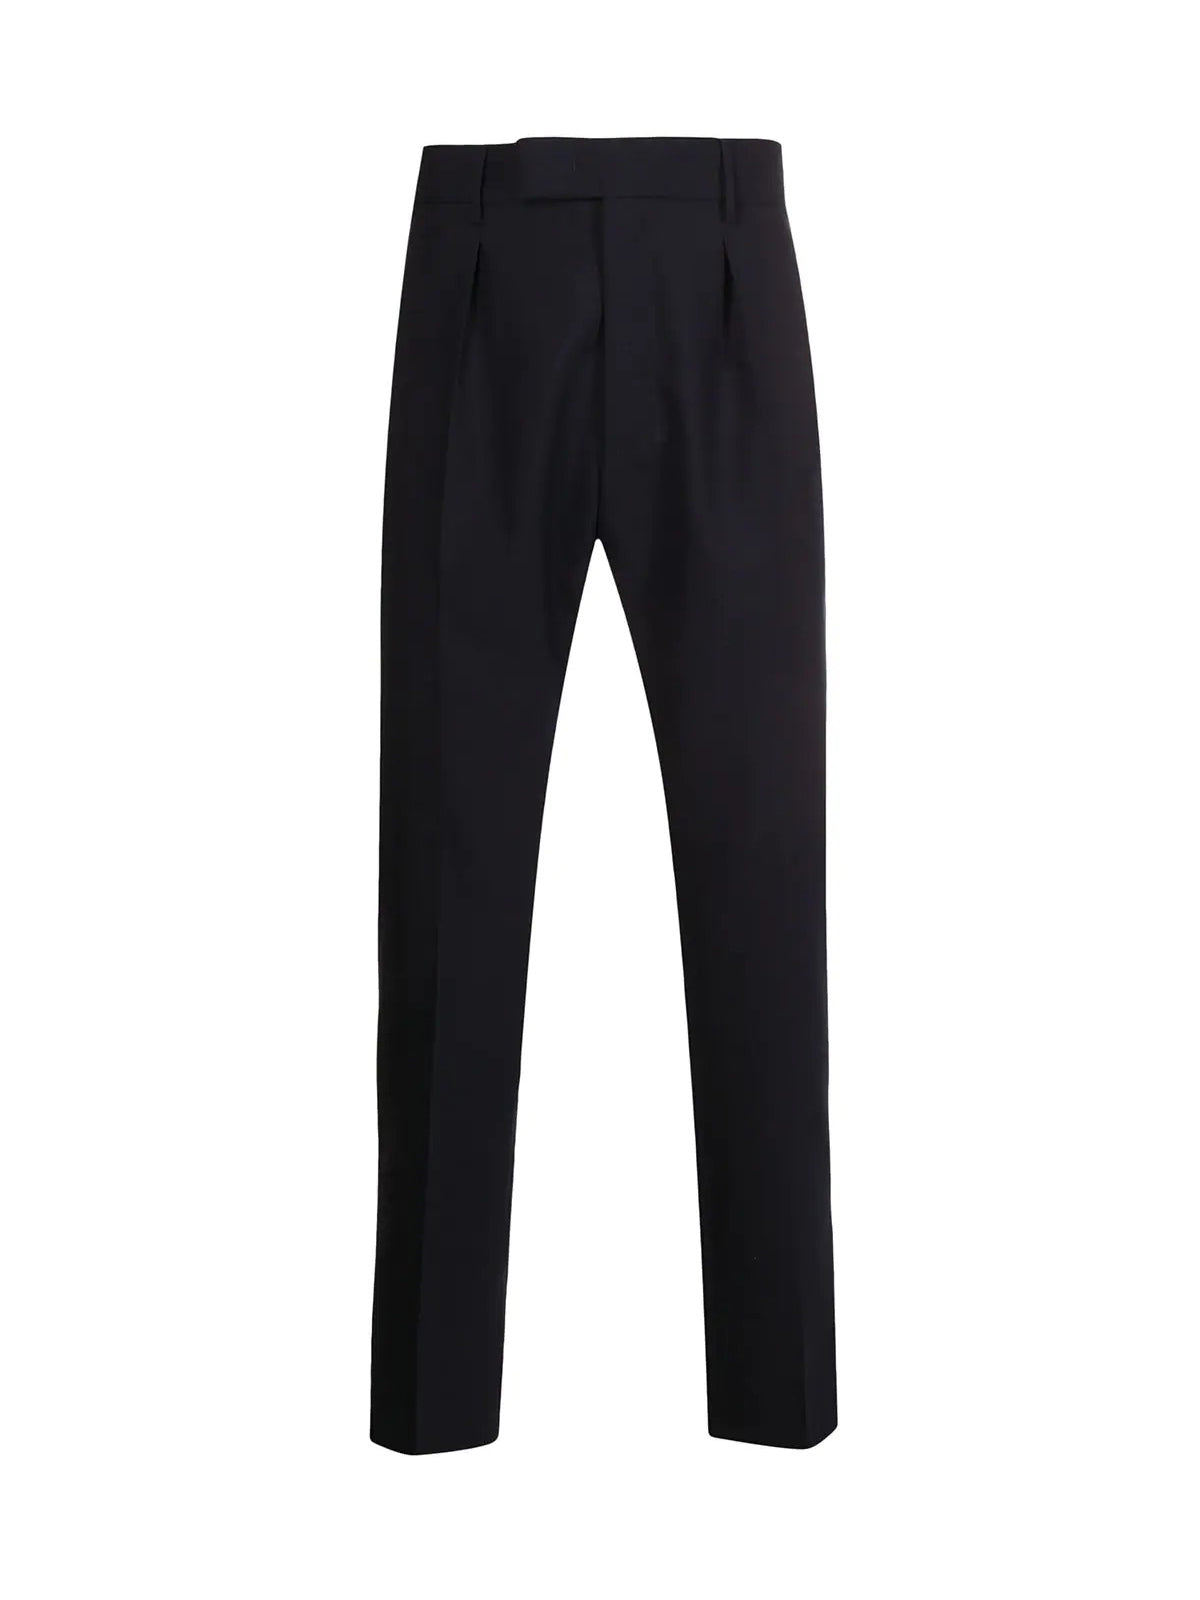 Slim tailoring trousers